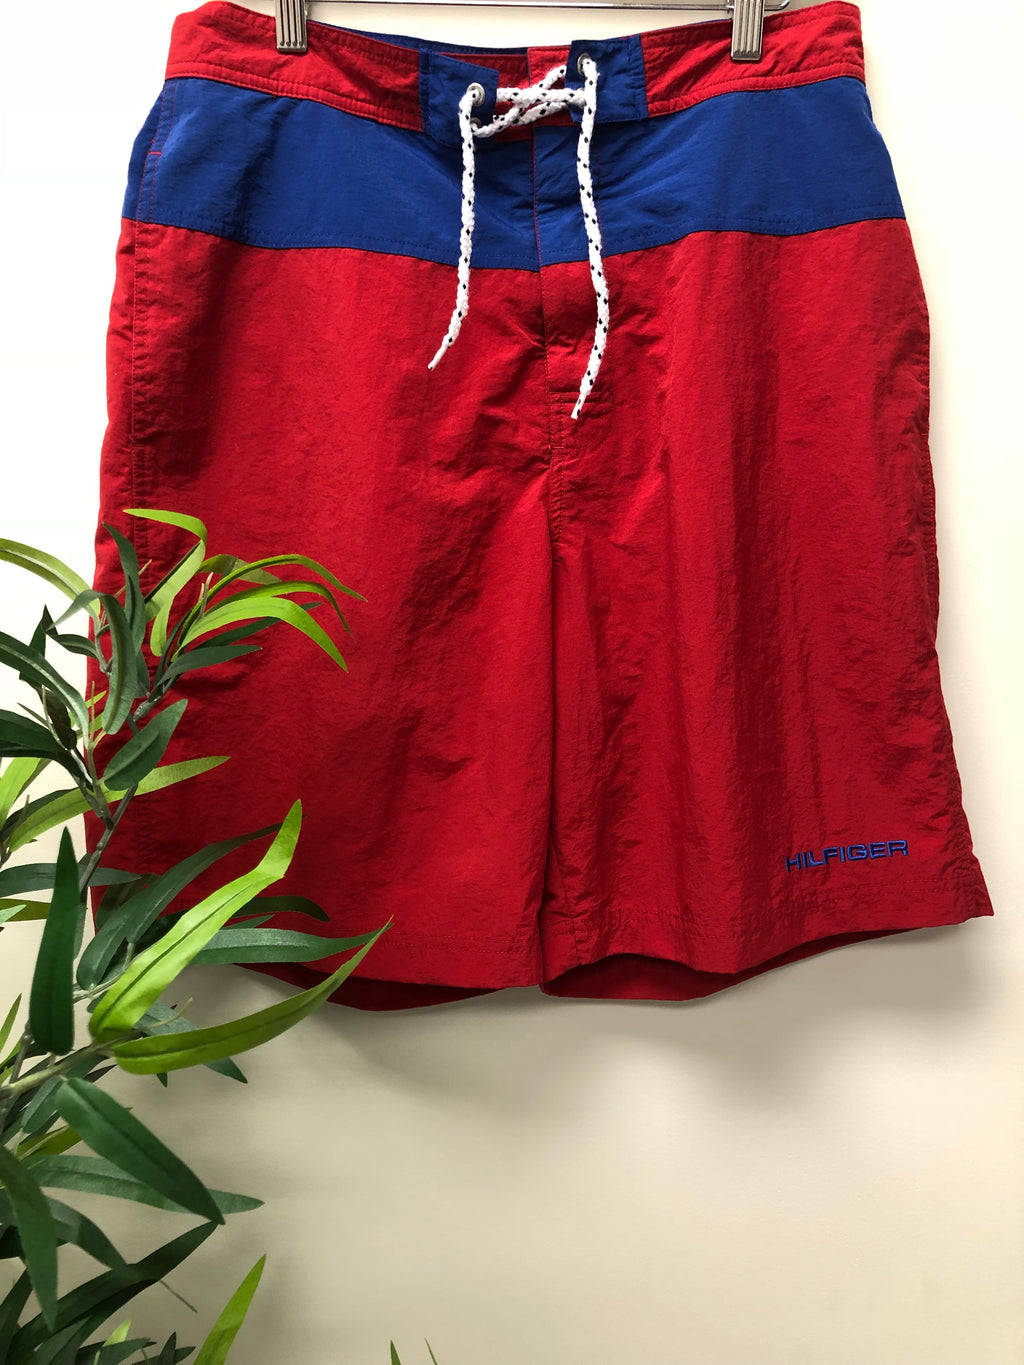 Hilfiger red board shorts